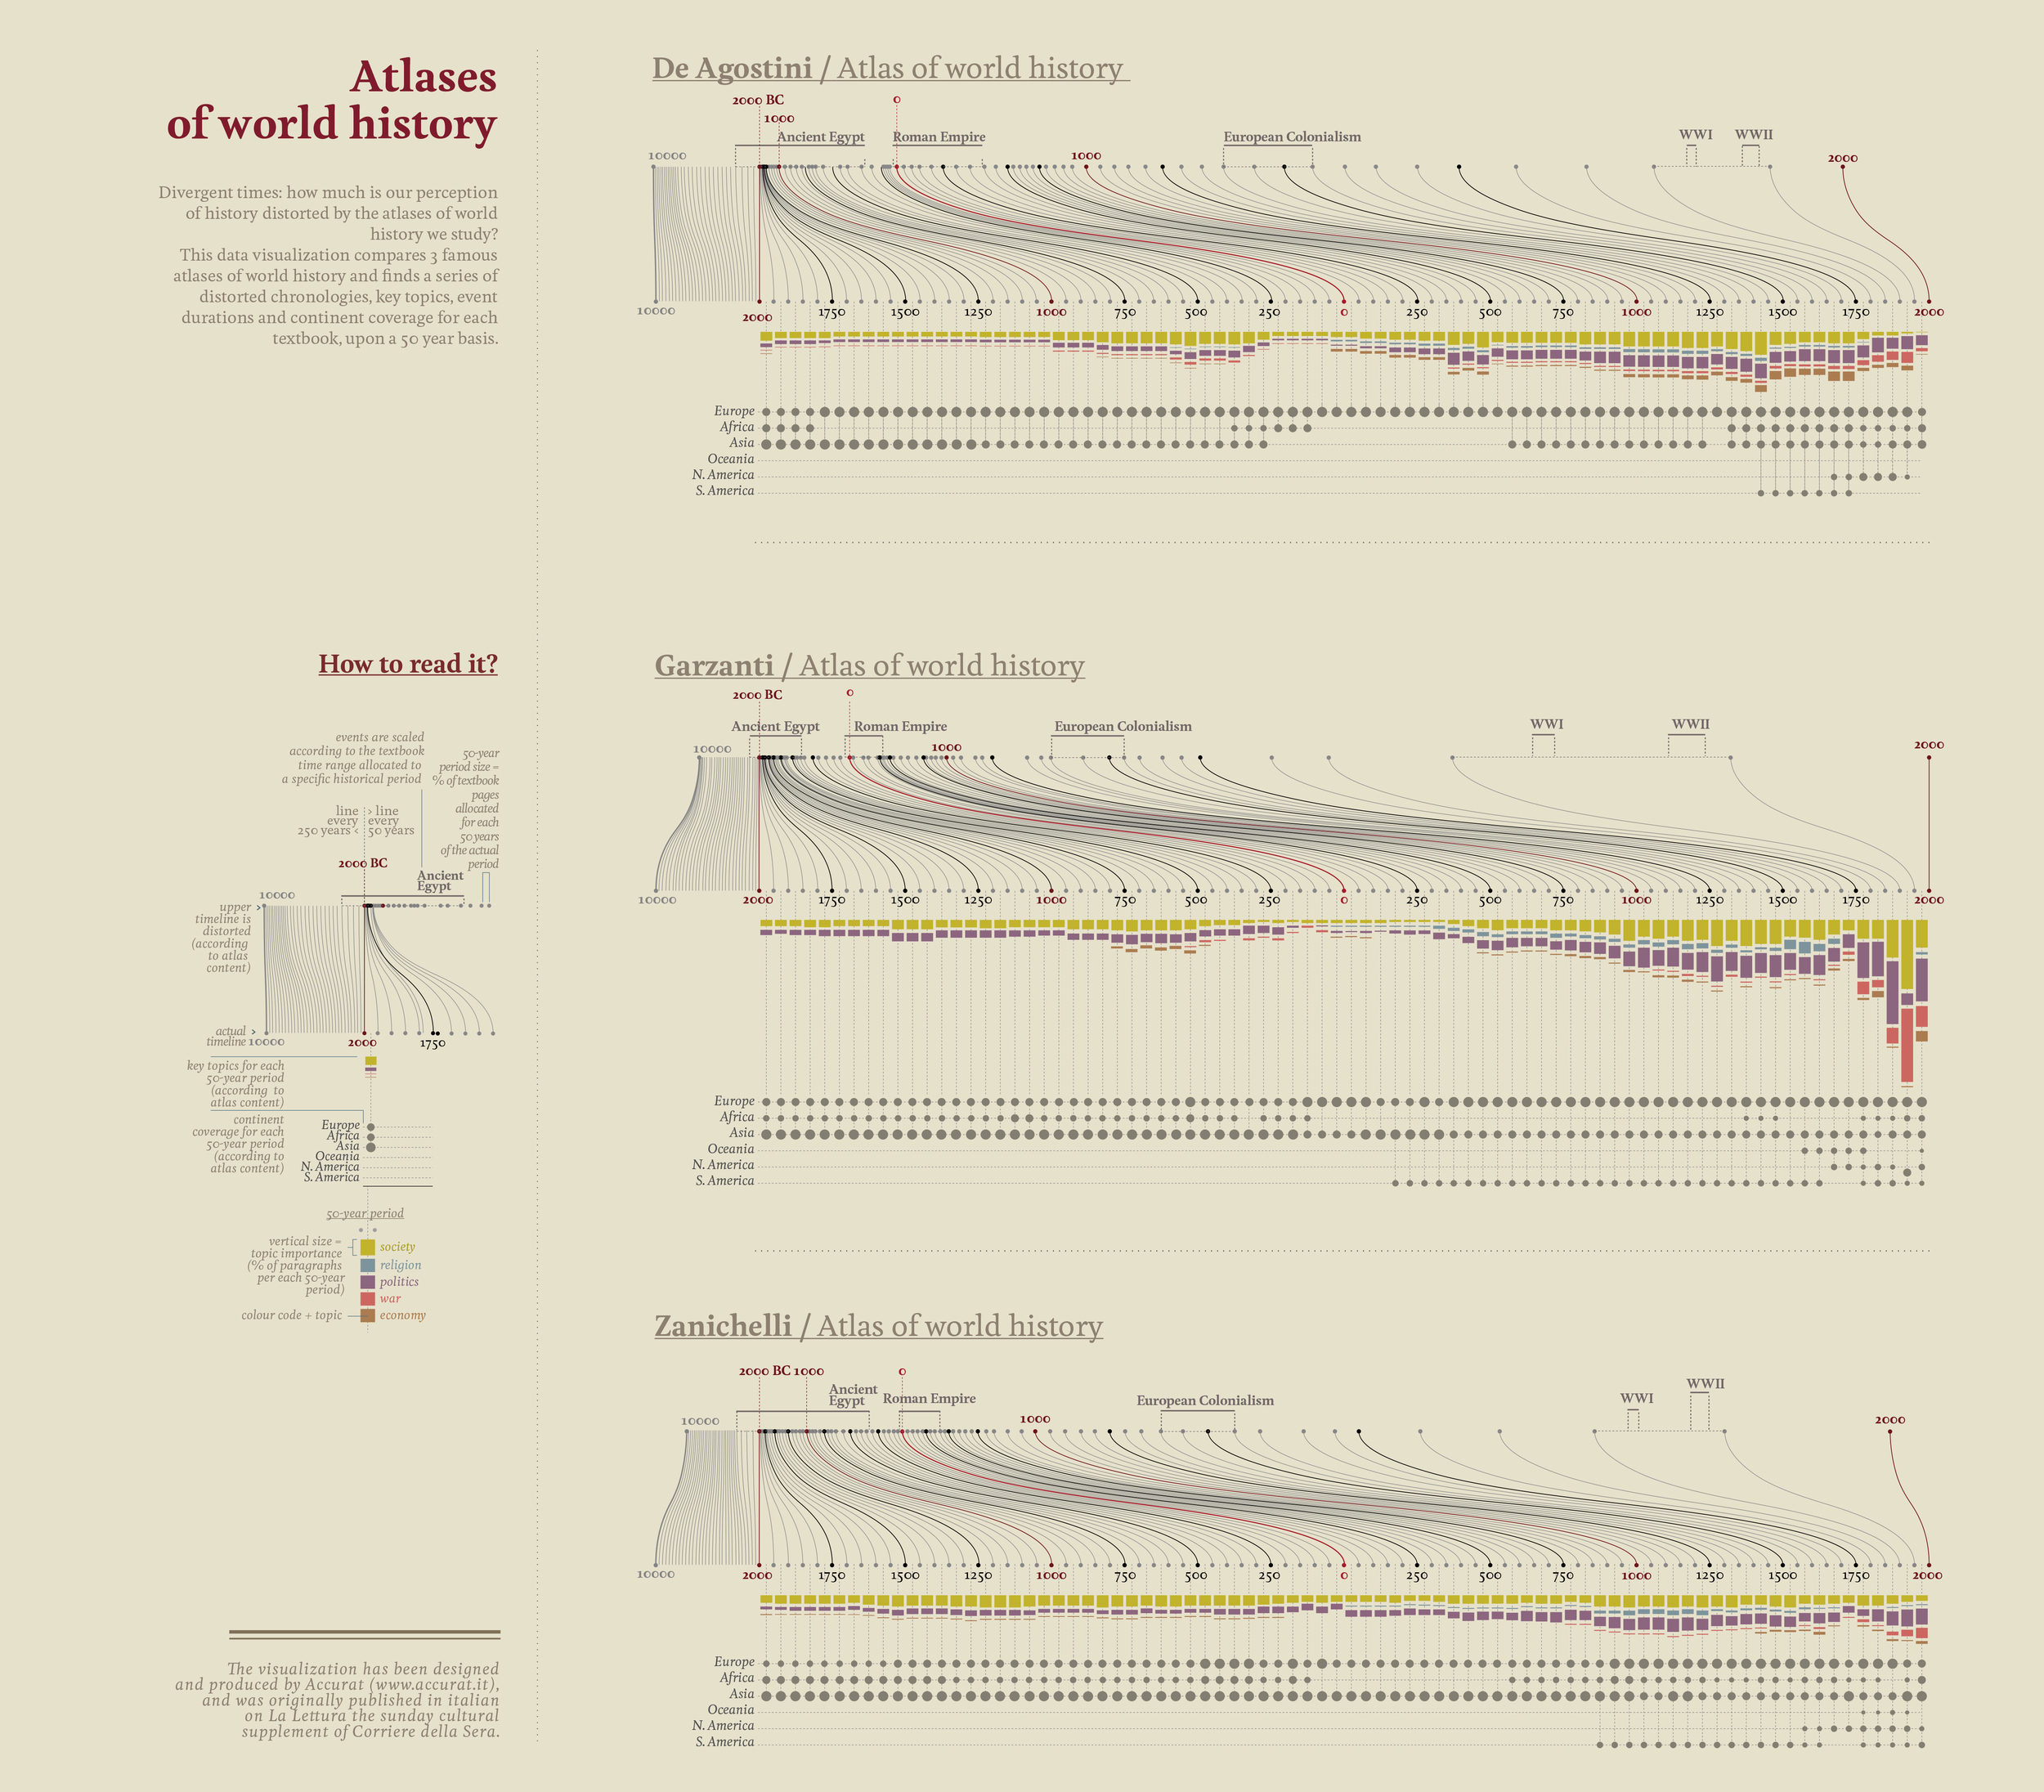 14.Comparing_historical_Atlases_new_layout.jpg